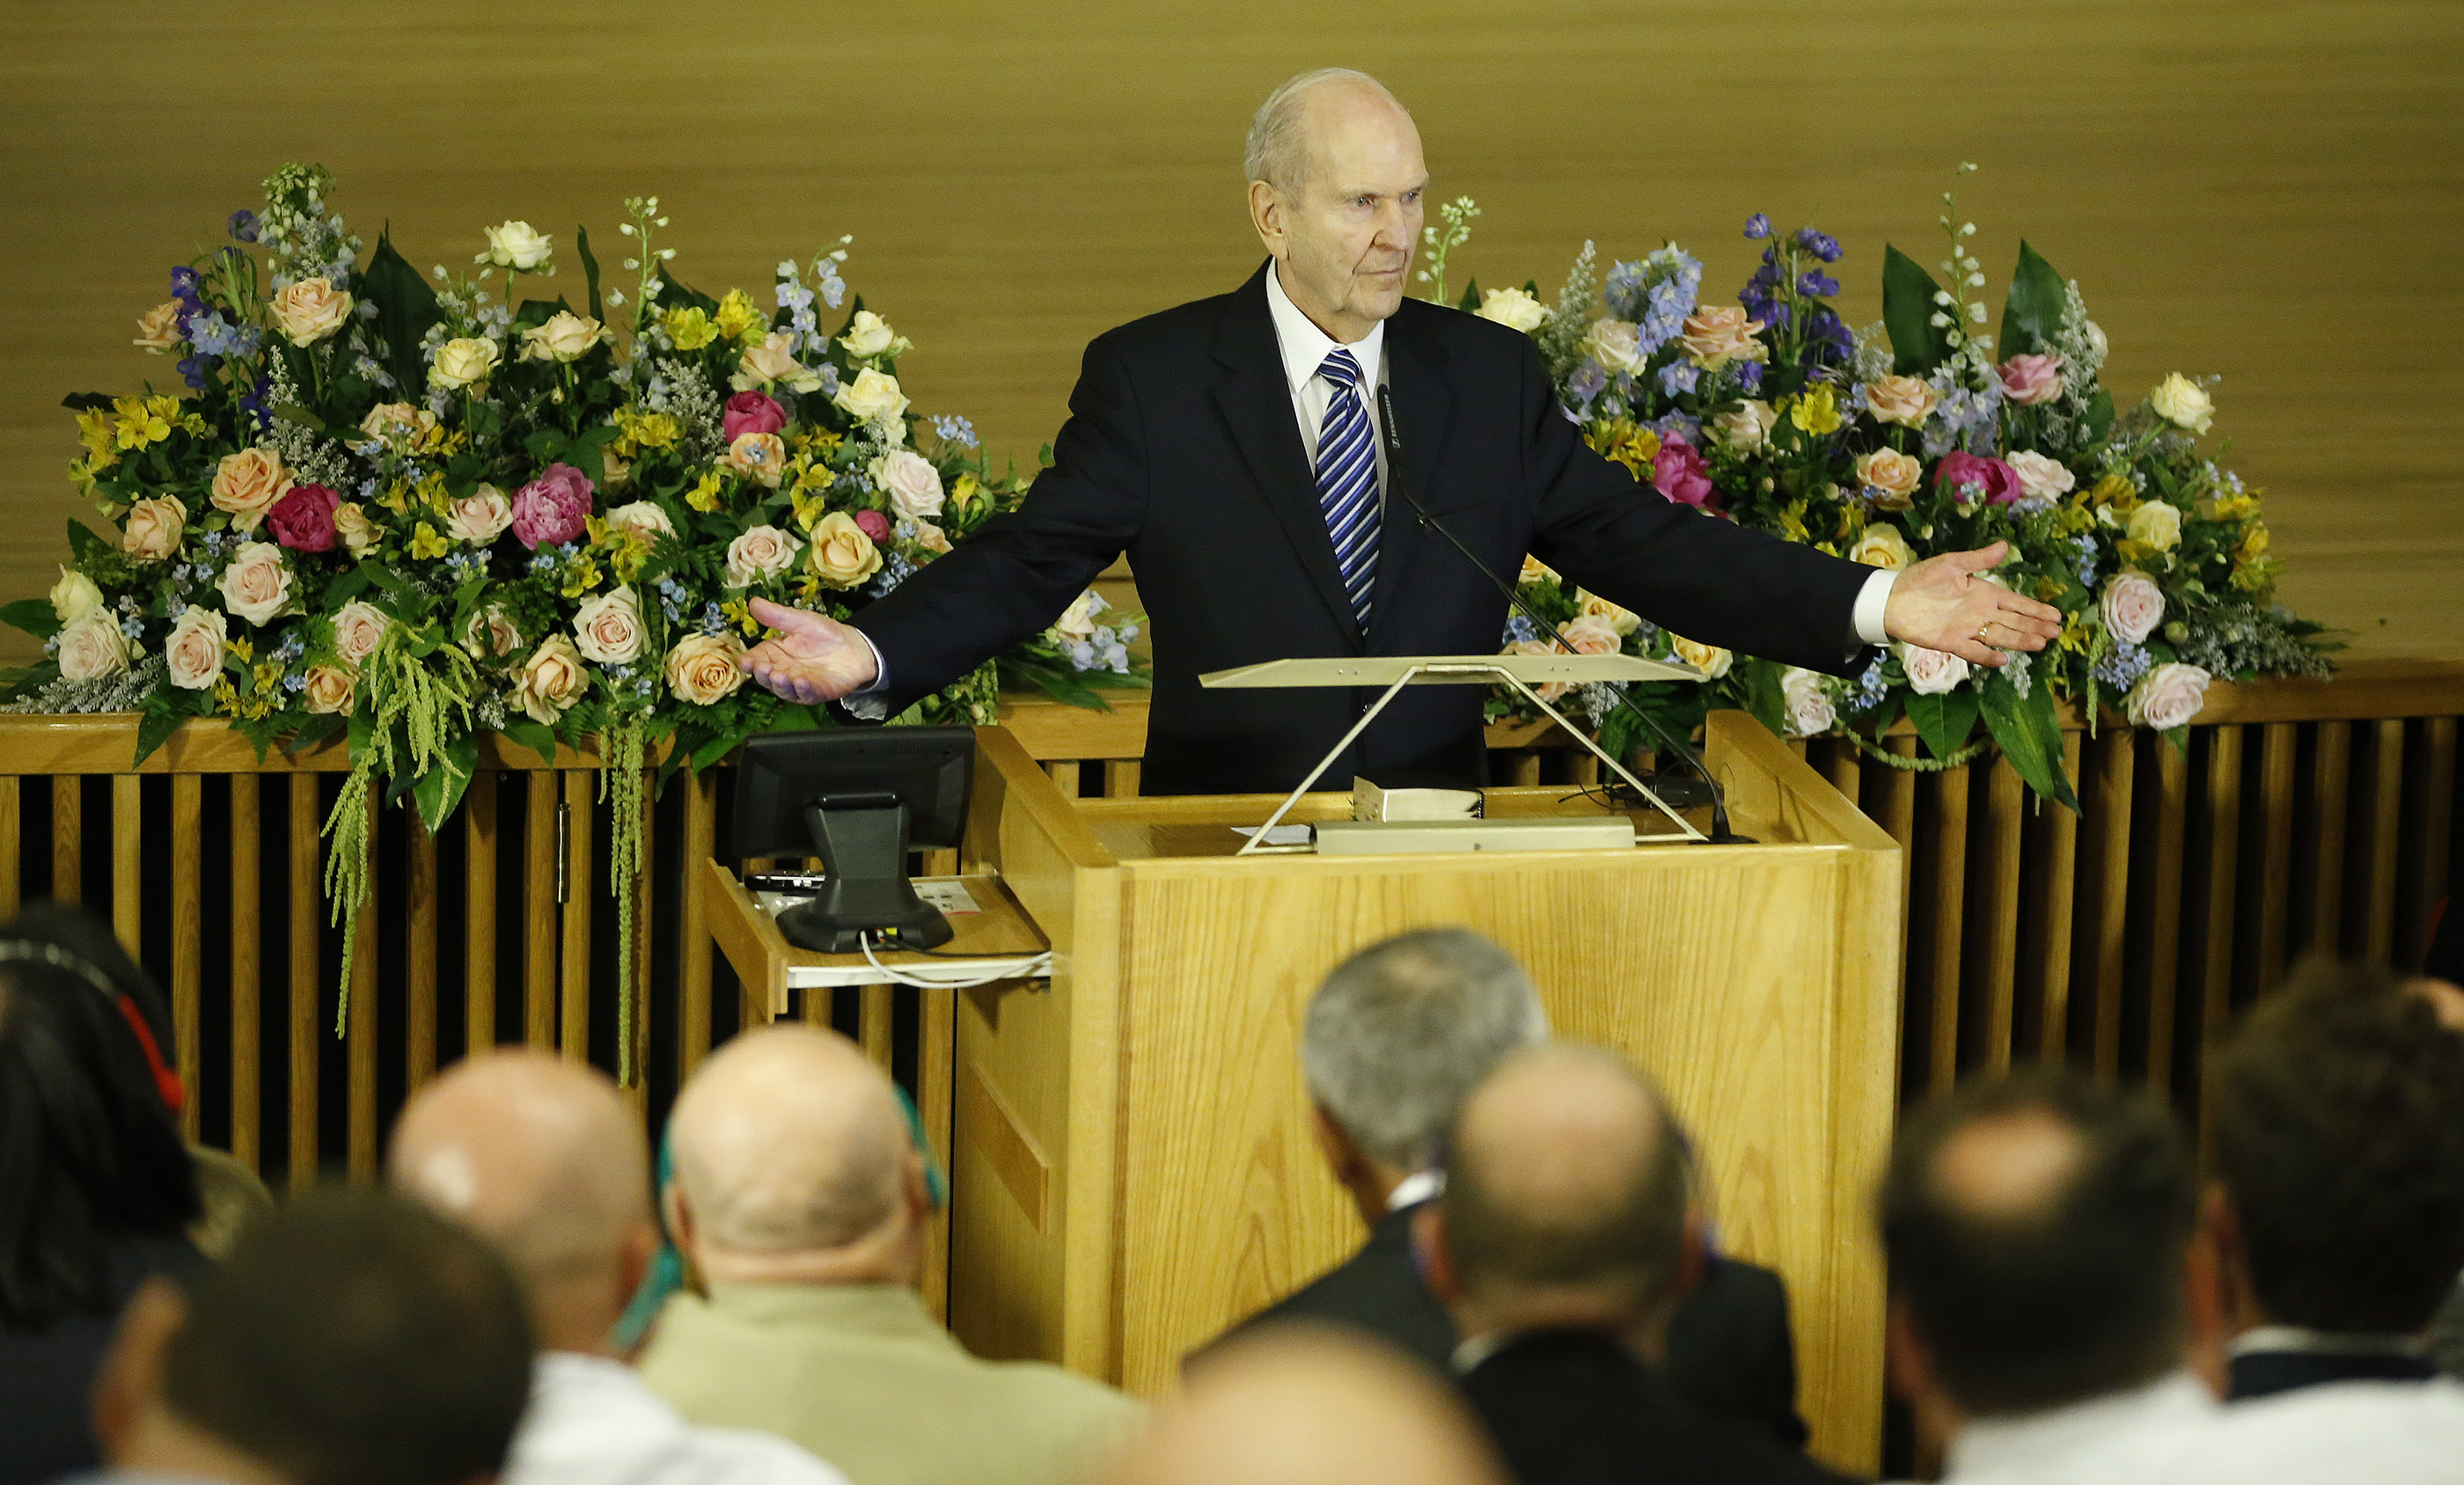 President Russell M. Nelson, president of The Church of Jesus Christ of Latter-day Saints, speaks during a Jerusalem District Conference priesthood meeting at the BYU Jerusalem Center in Jerusalem on Saturday, April 14, 2018.